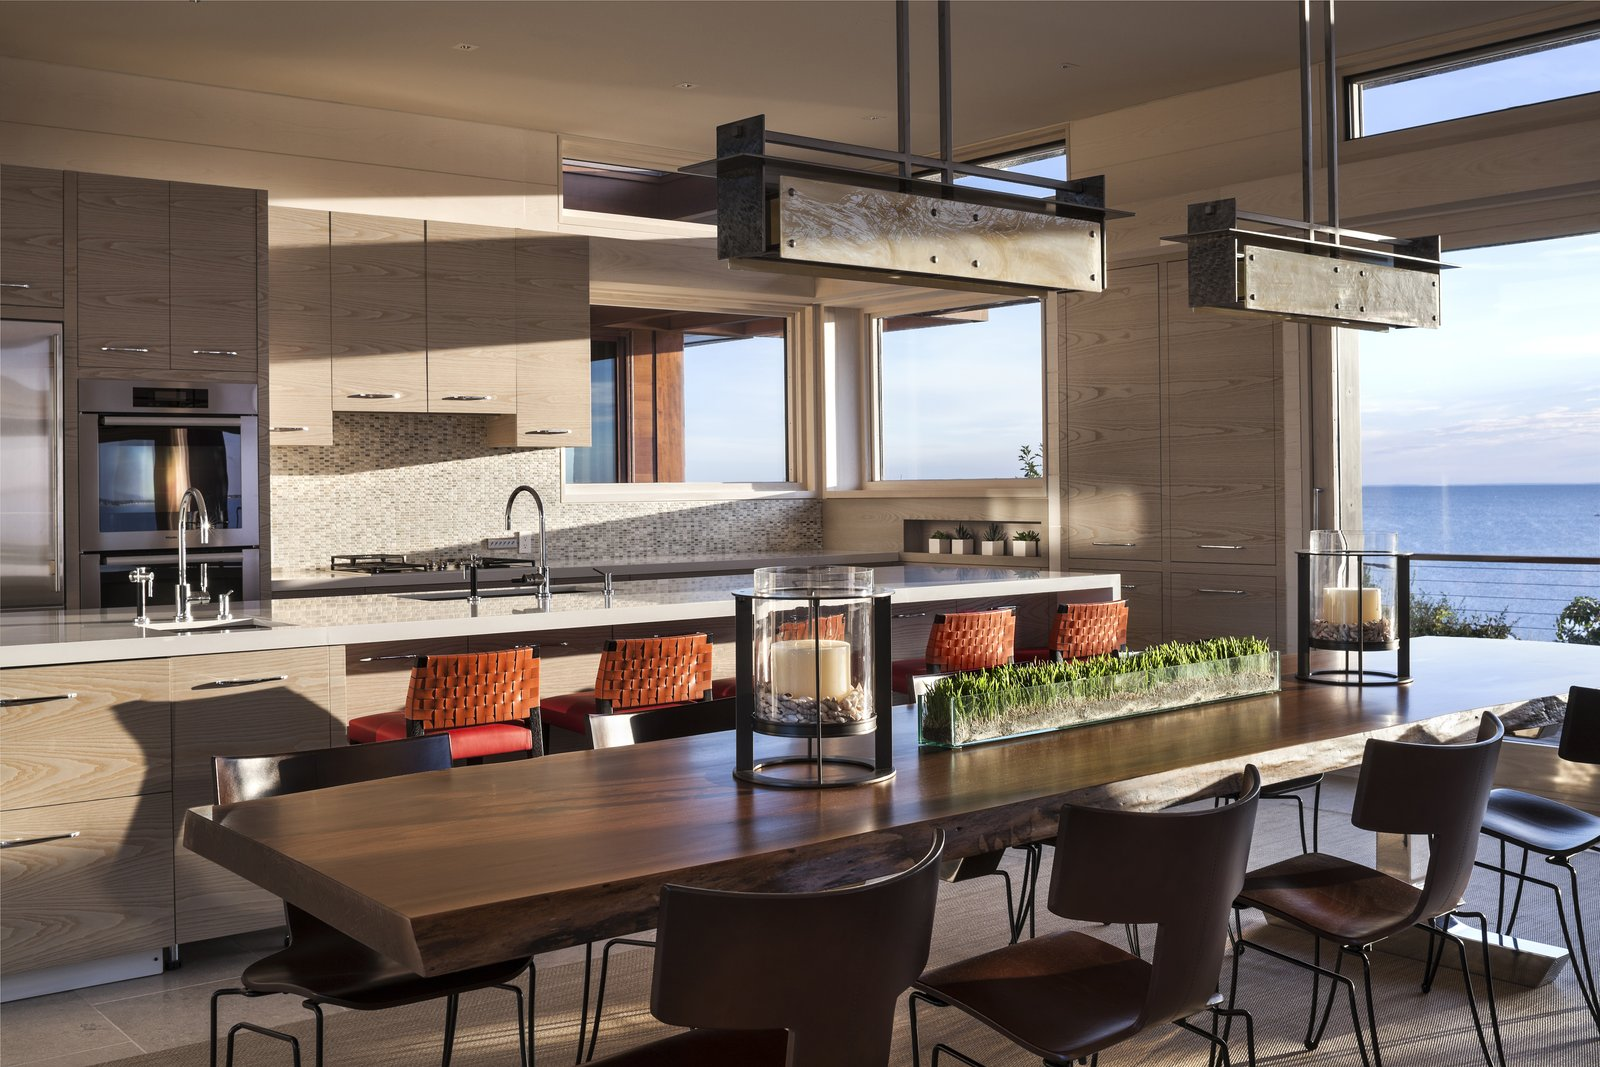 The open layout seamlessly connects kitchen, dining, and living spaces.